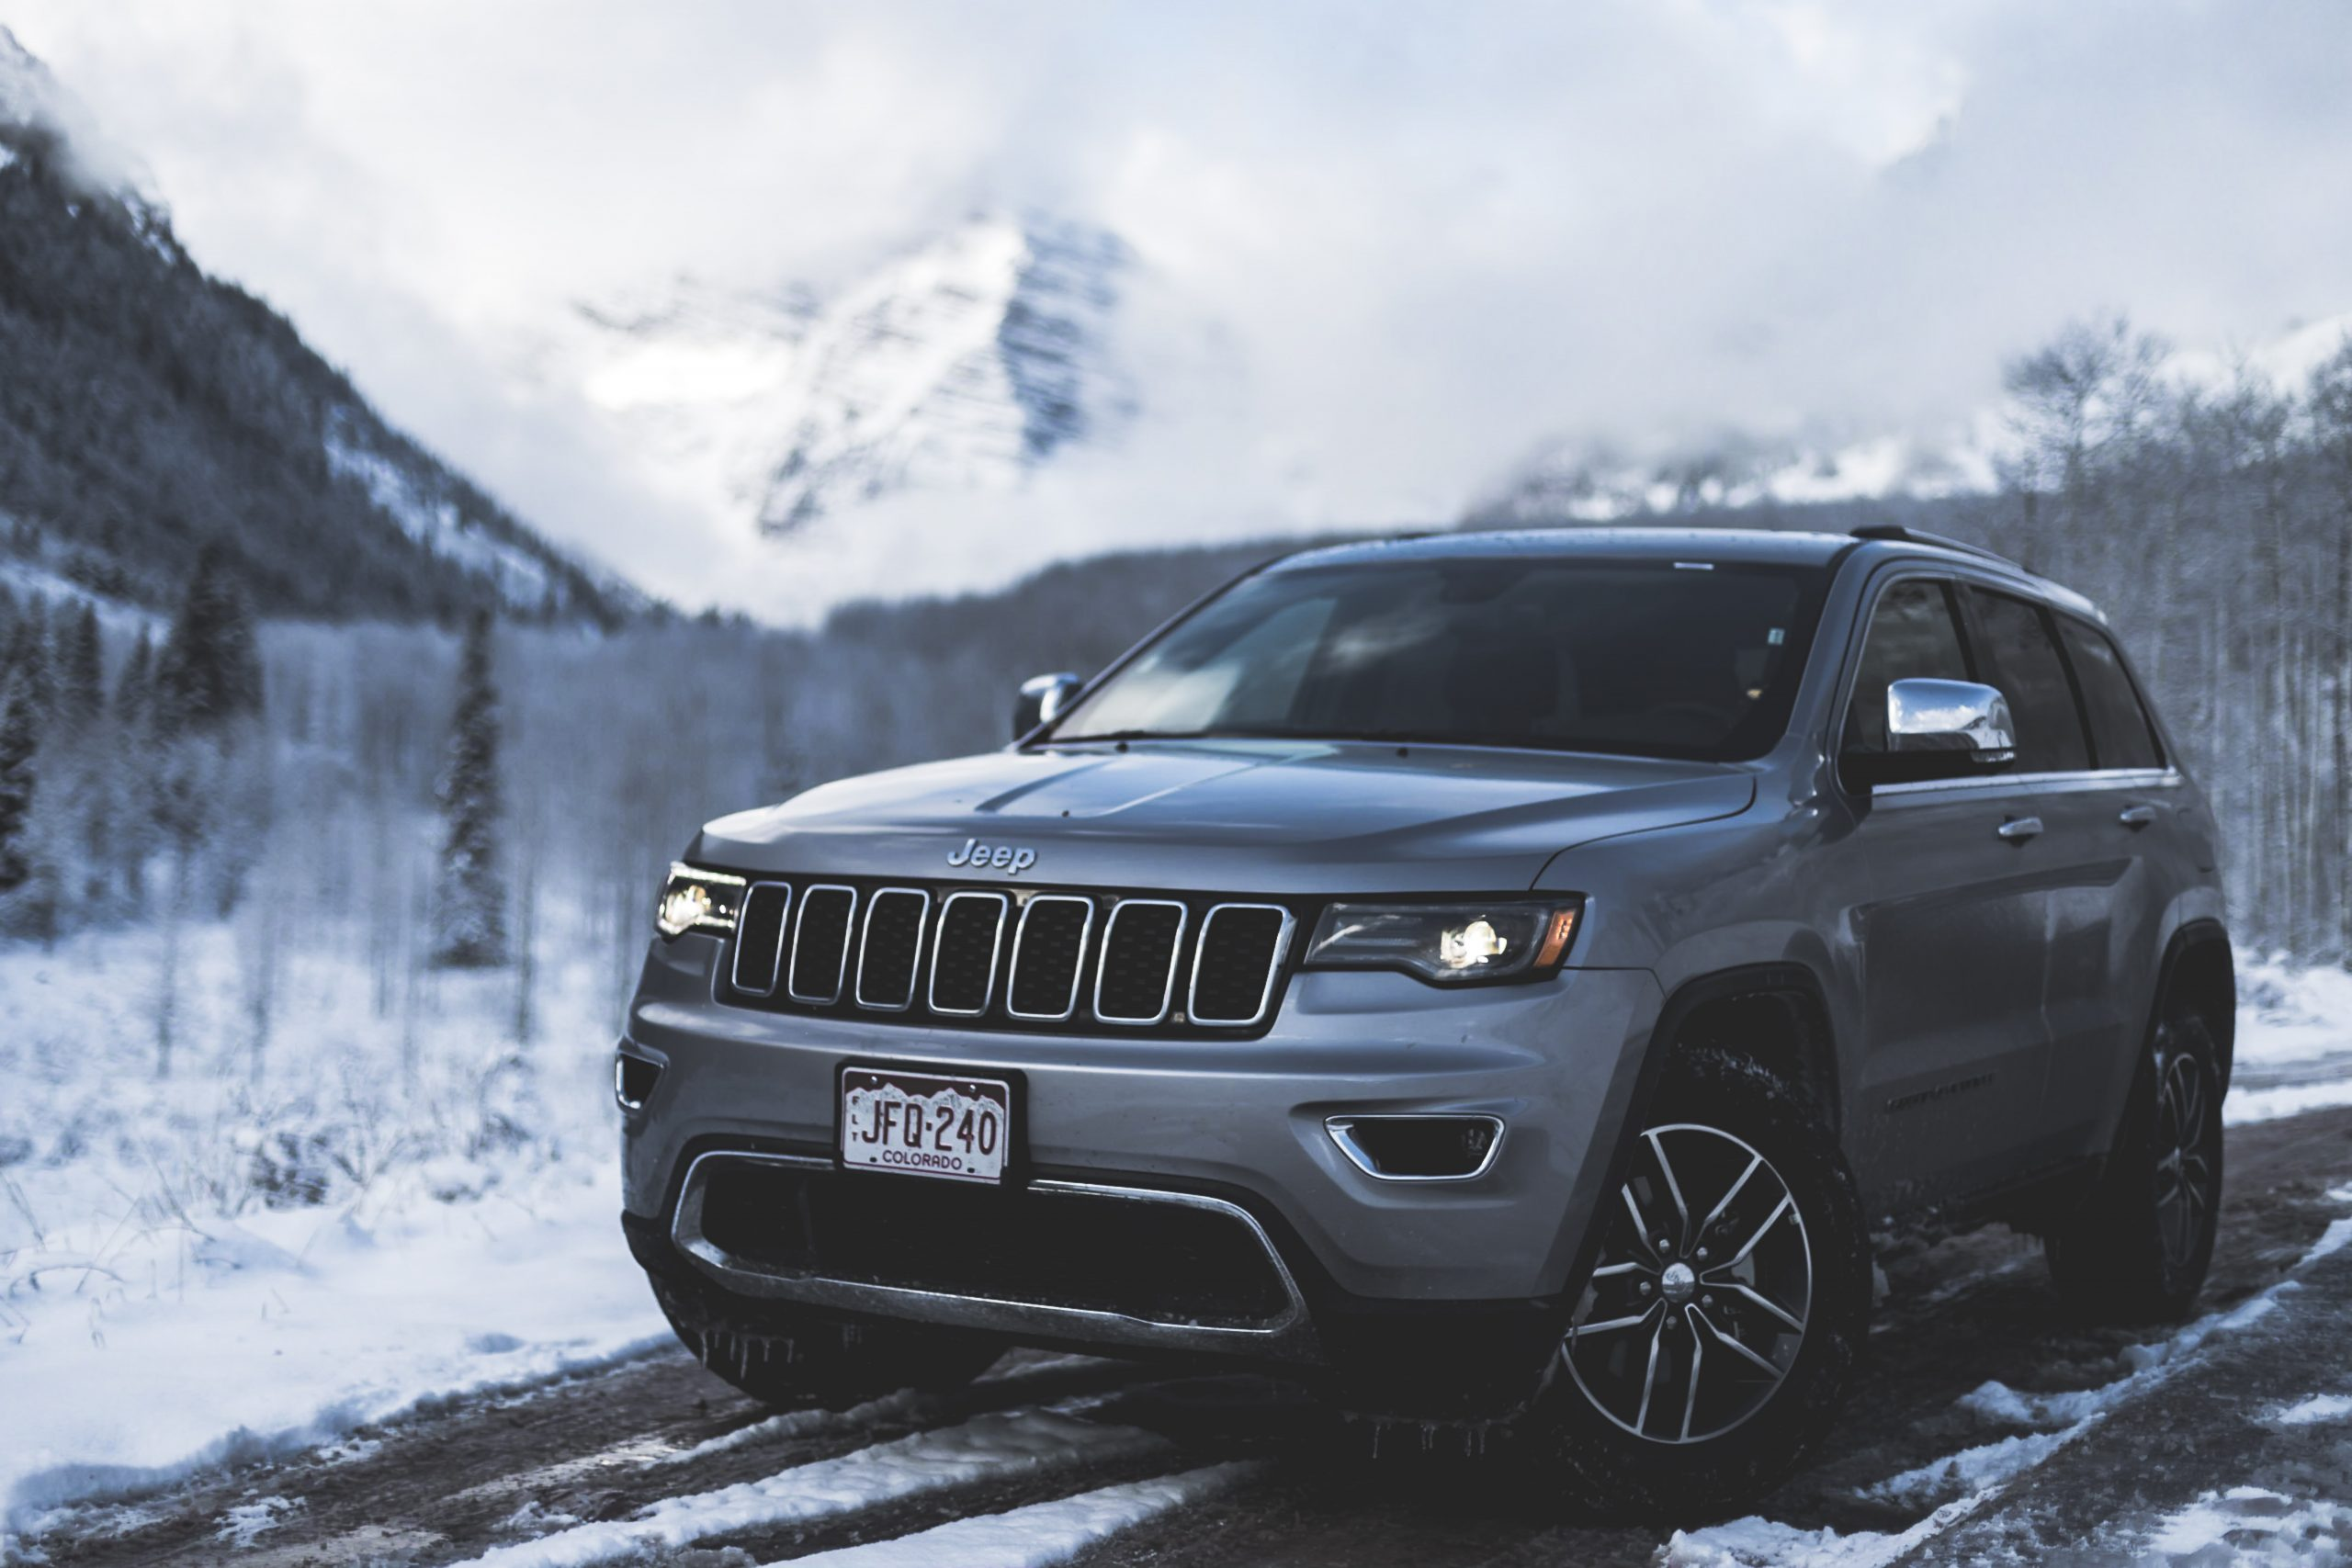 CYBERSECURITY FRAMEWORK TUTORIAL JEEP CHEROKEE-Invensis Learning